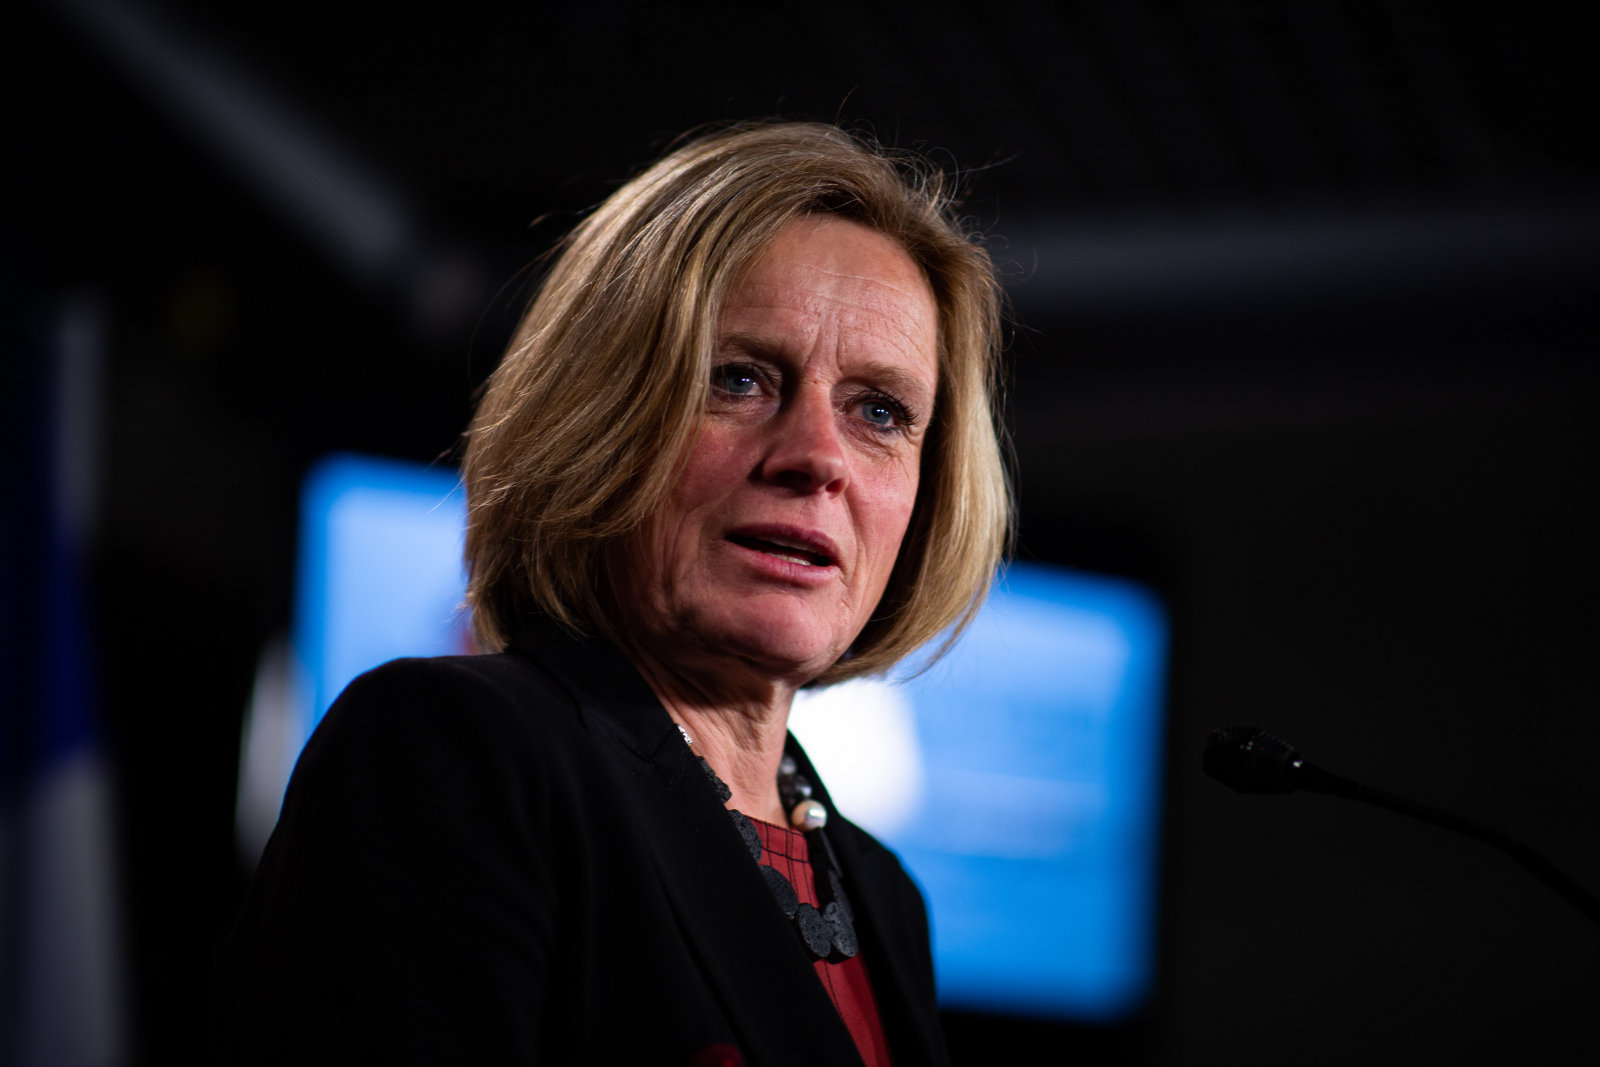 Alberta premier confident pipeline talks will succeed by May 31 deadline